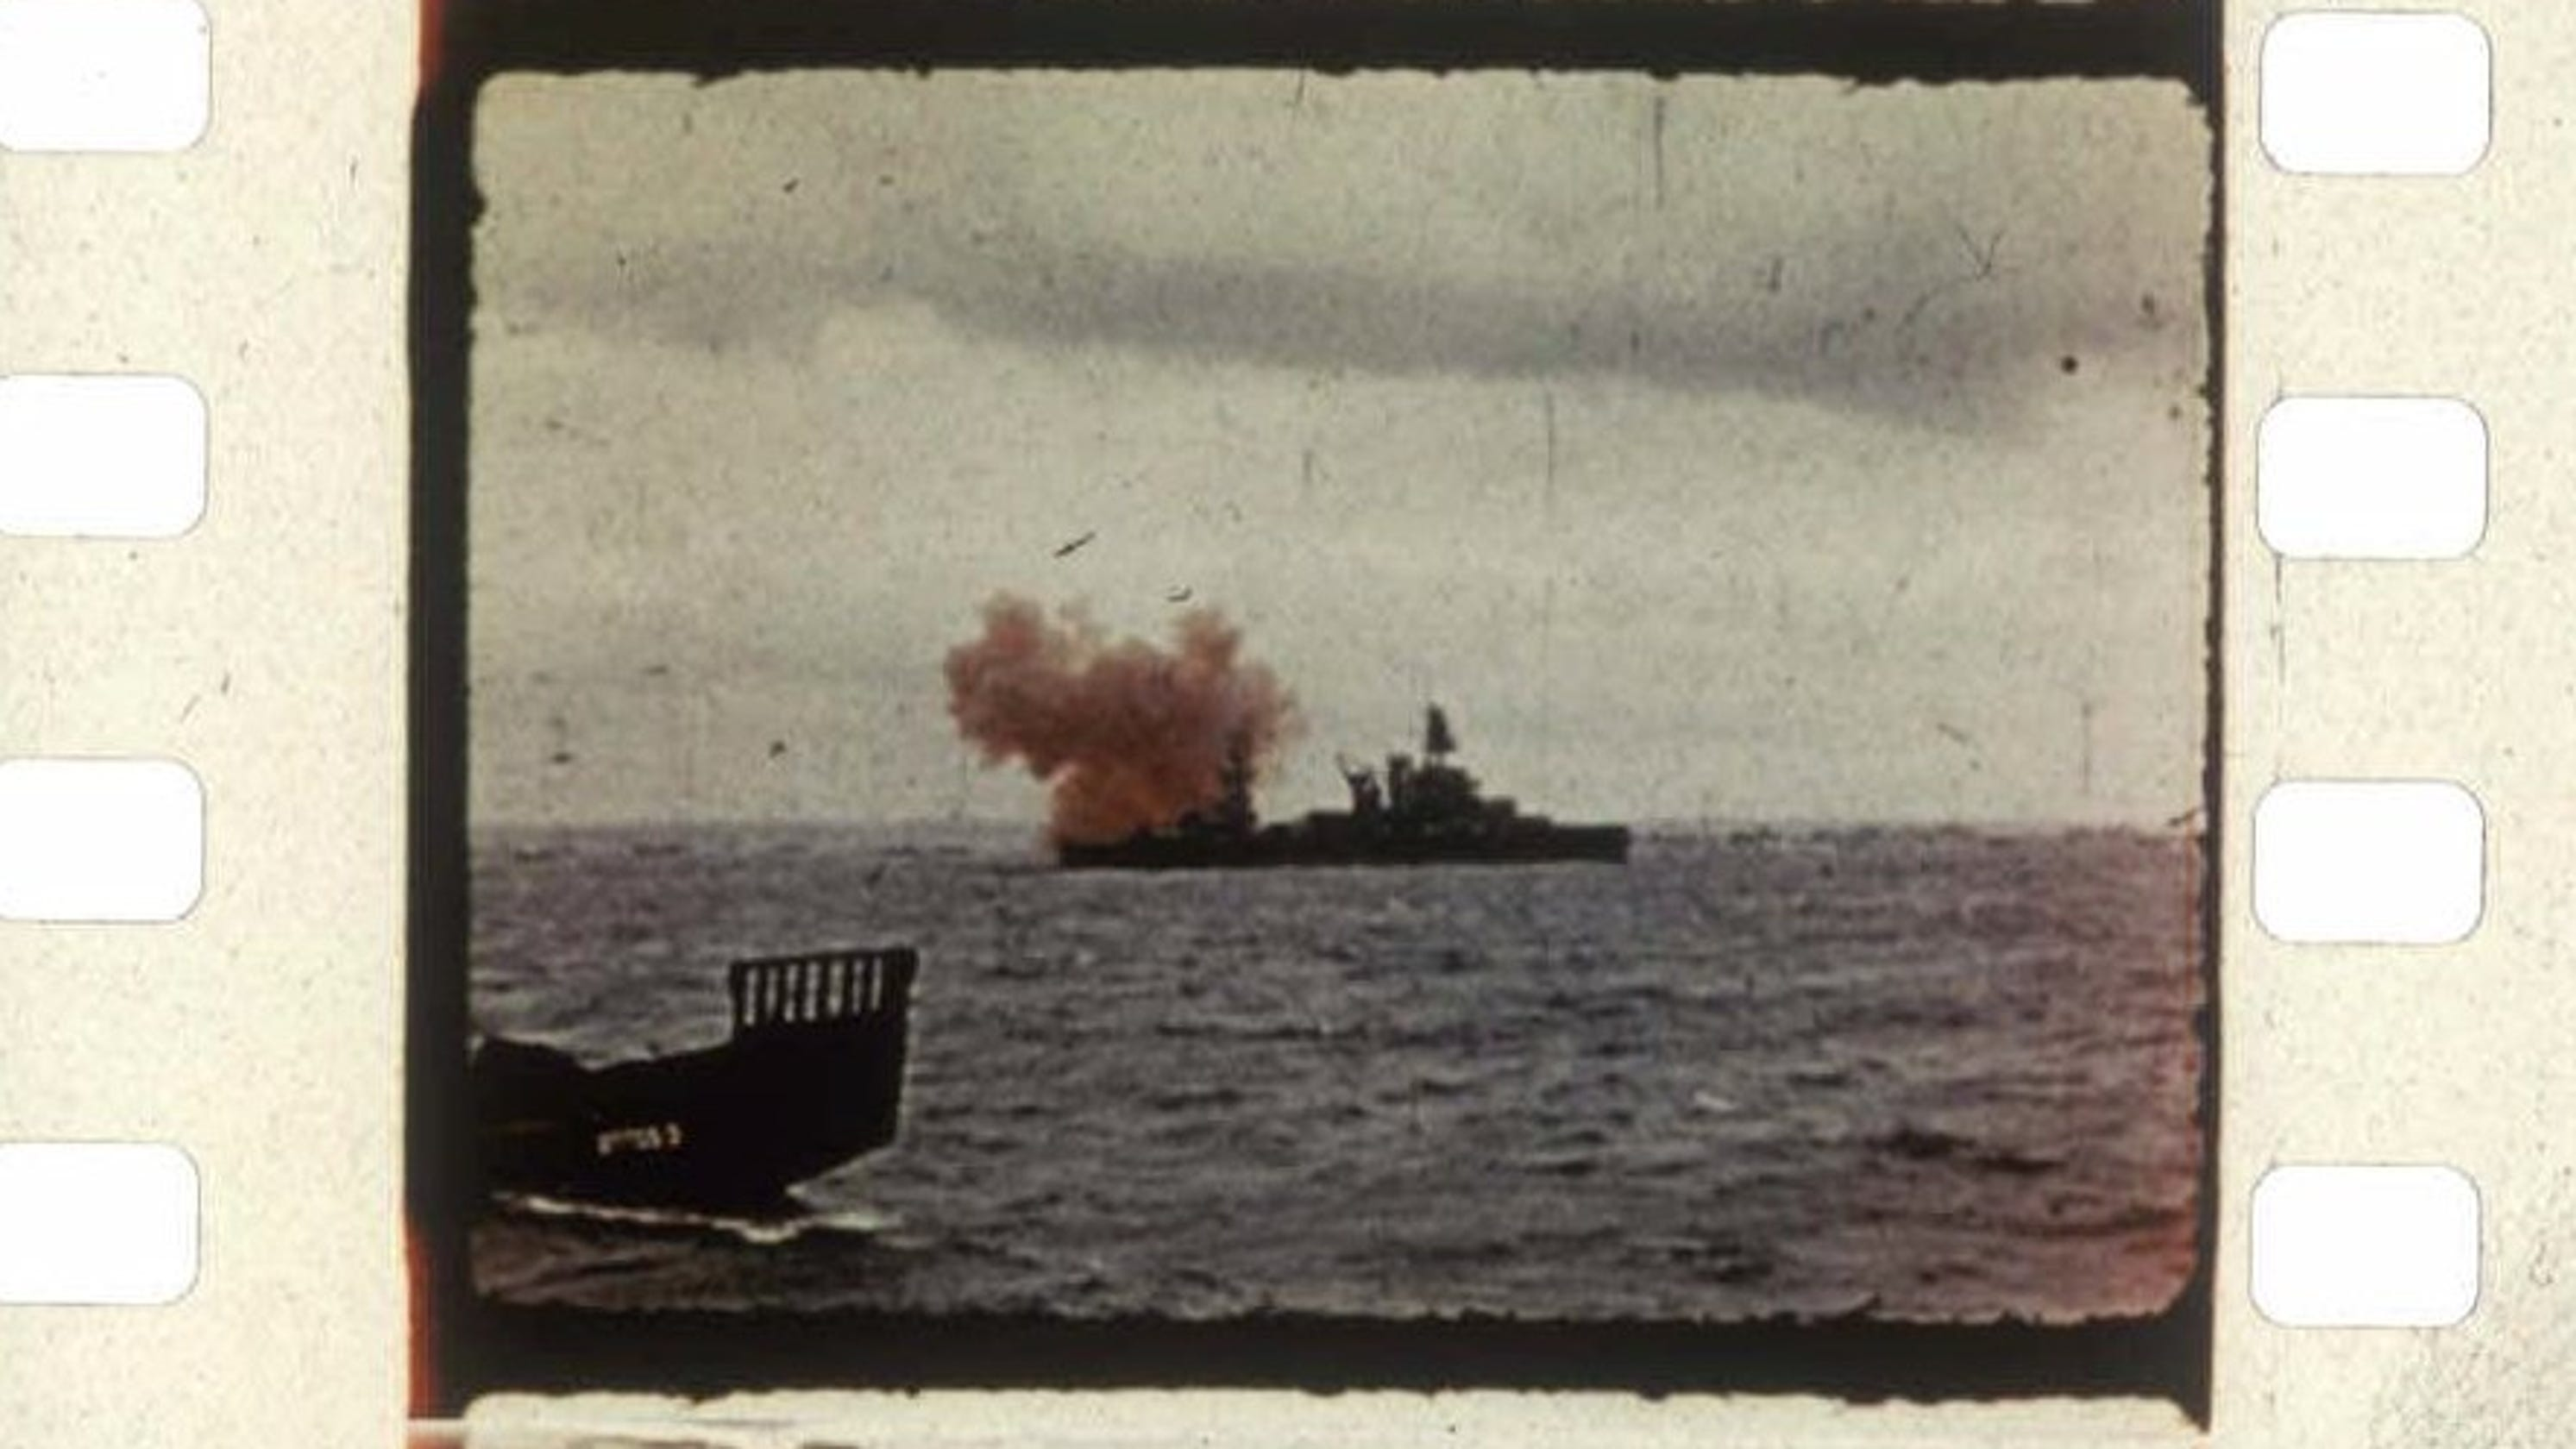 D-Day draws attention to WWII ships veterans aim to save